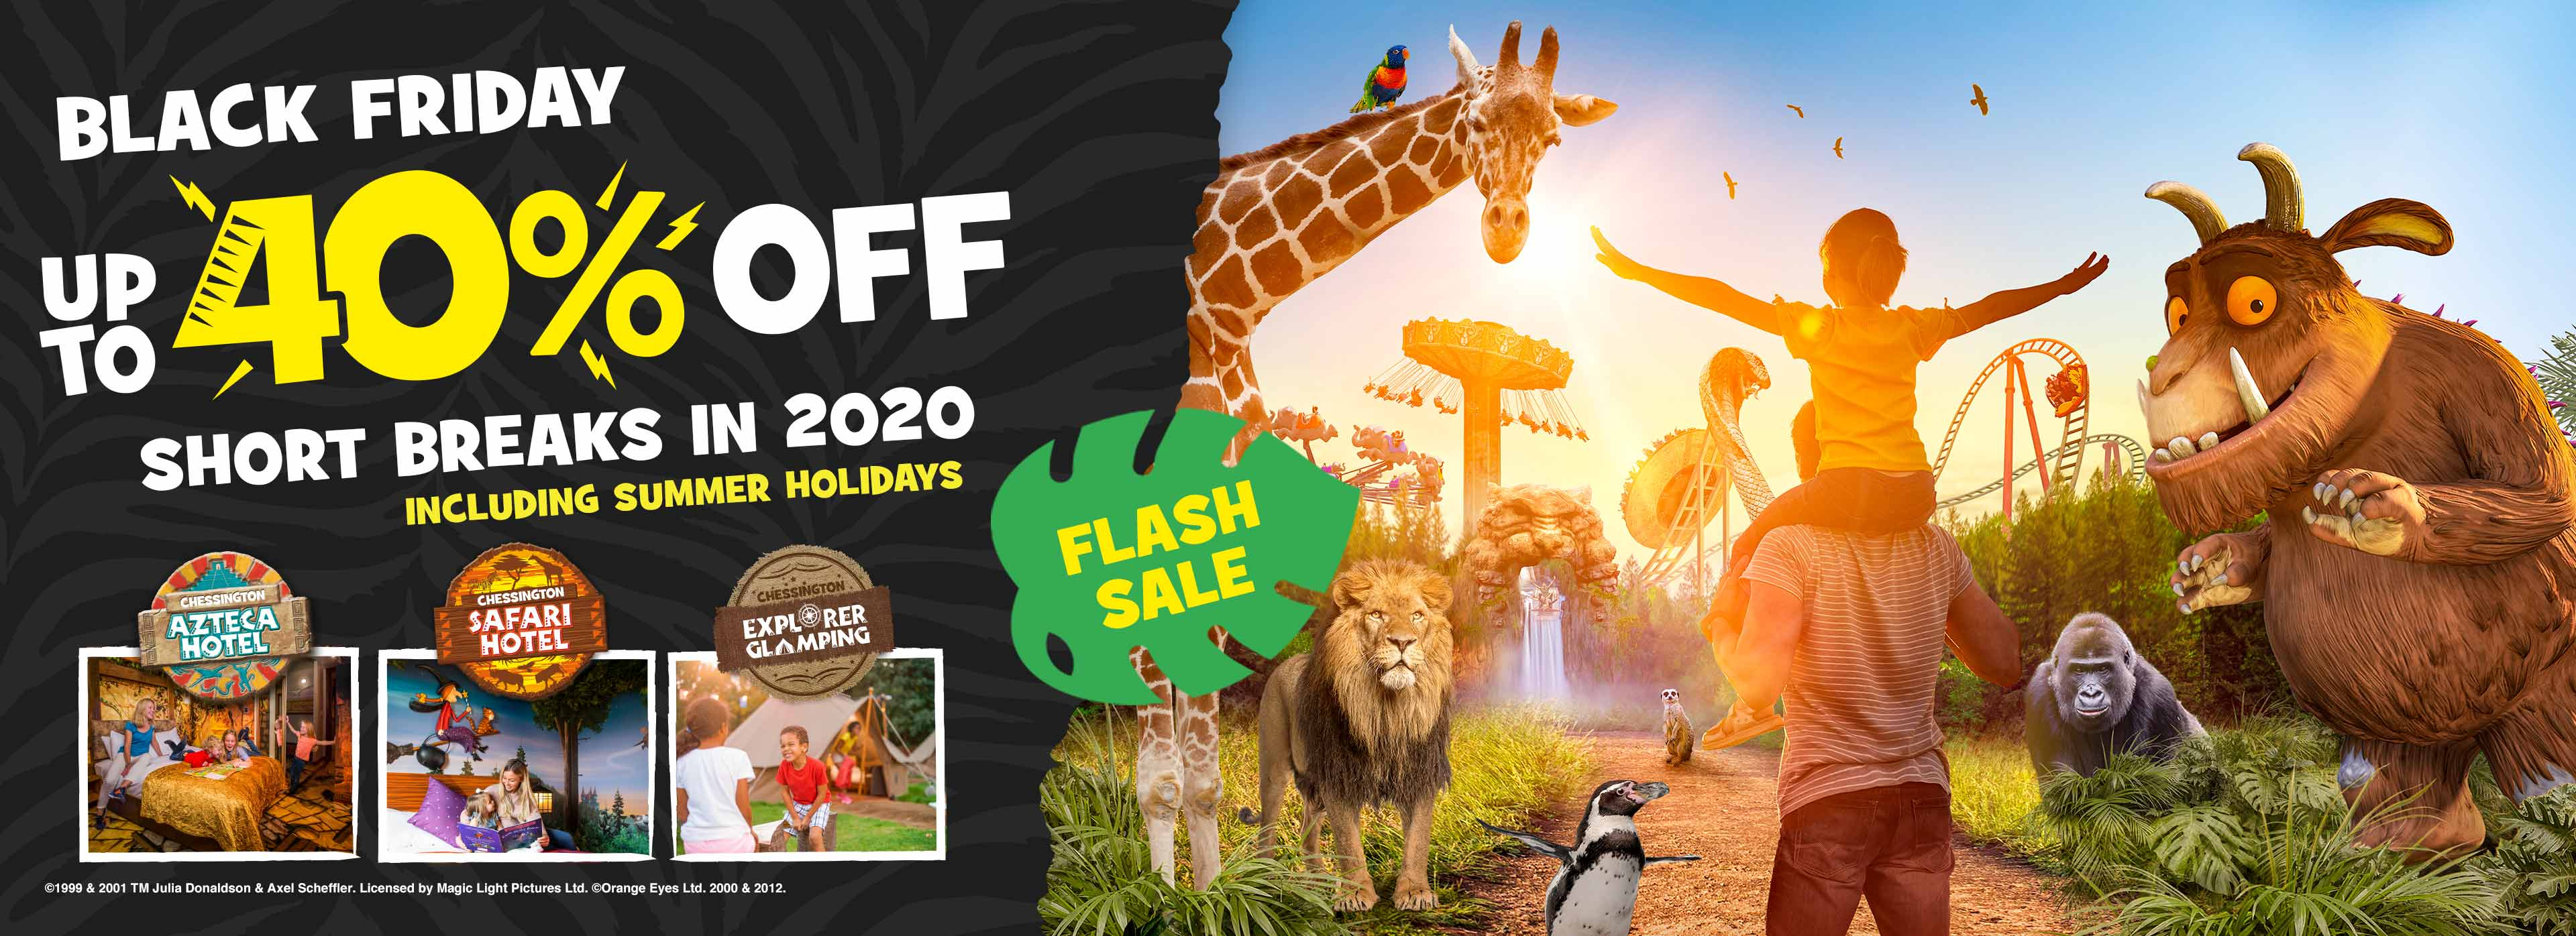 Black Friday Offer with Chessington Holidays